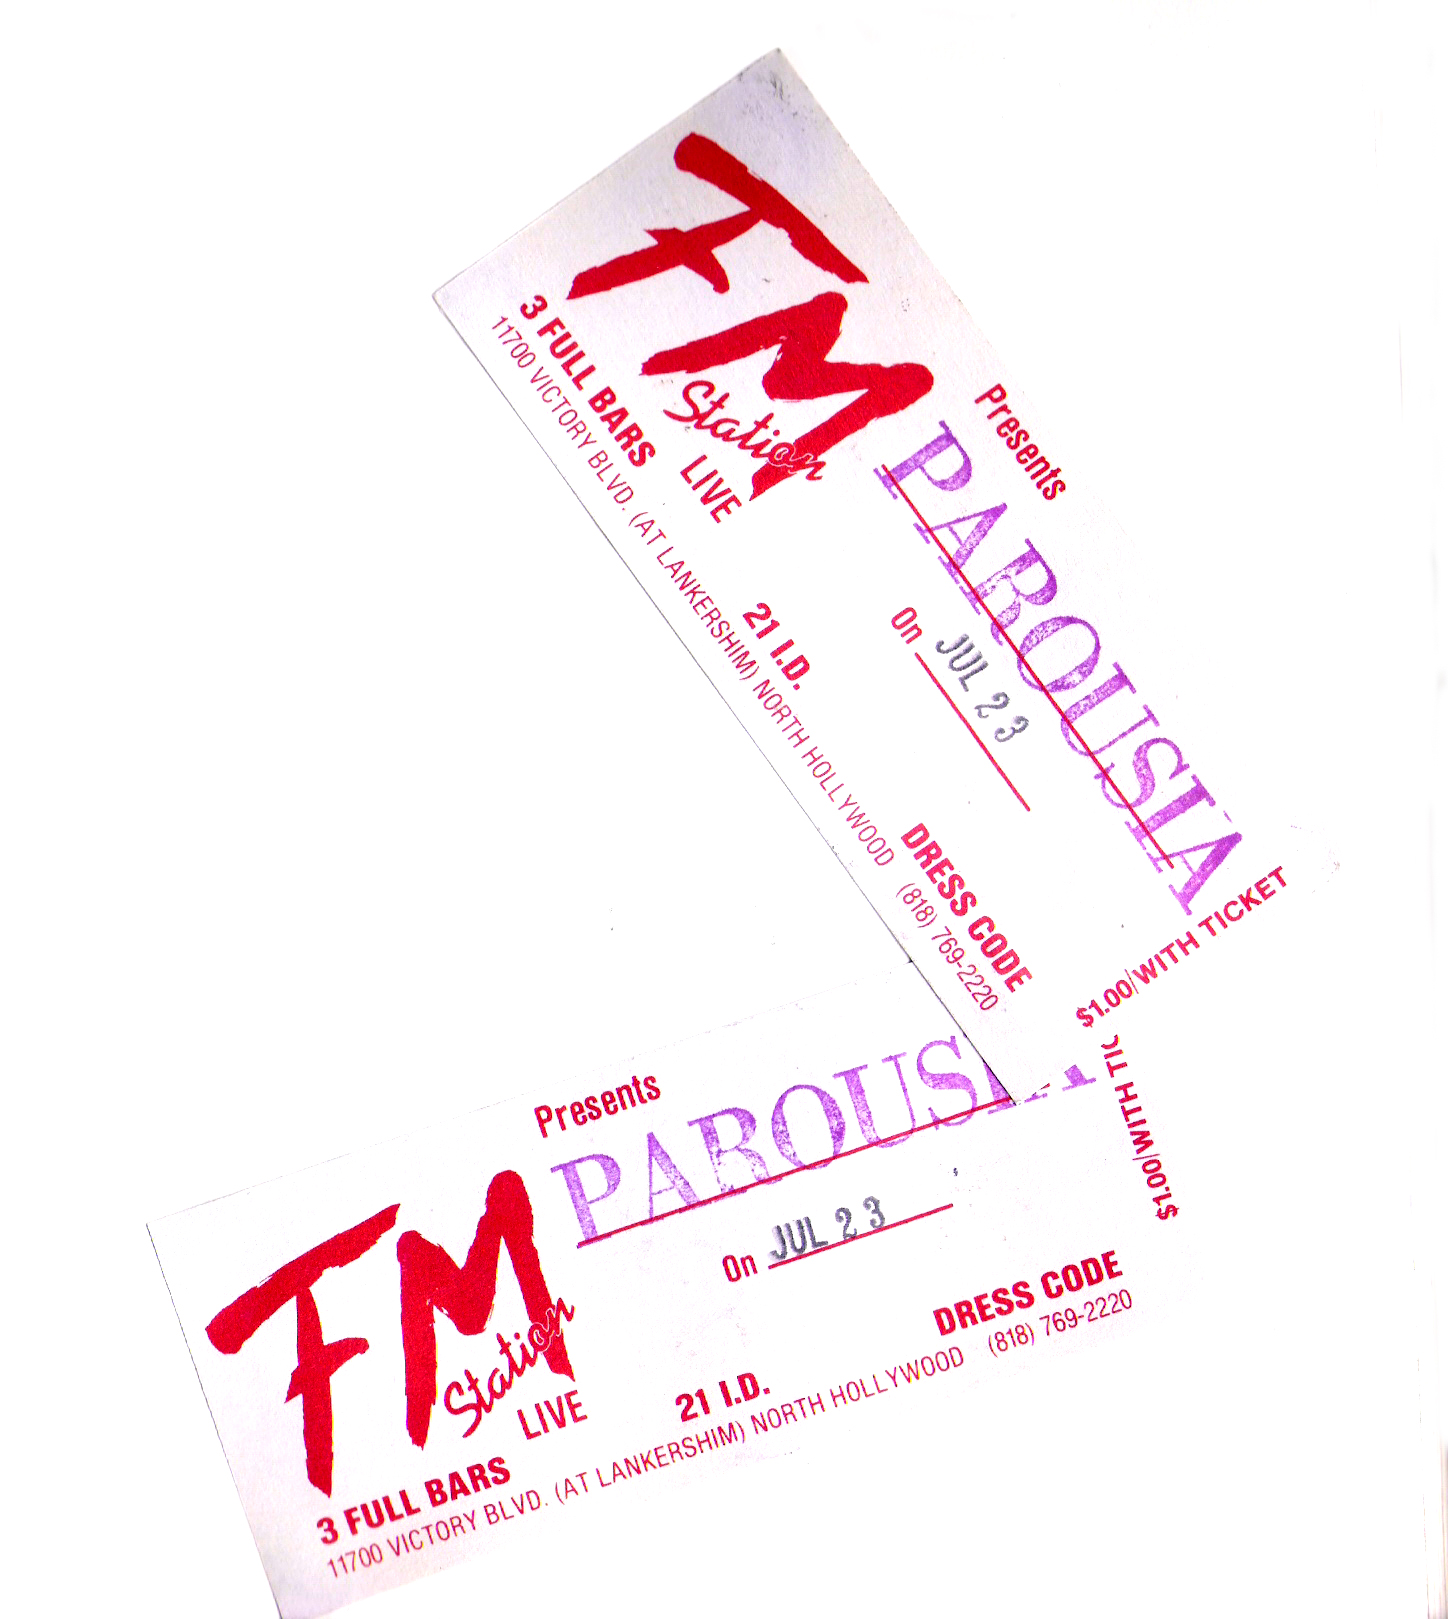 Pair of F.M. Station tickets for Parousia July 23, 1989